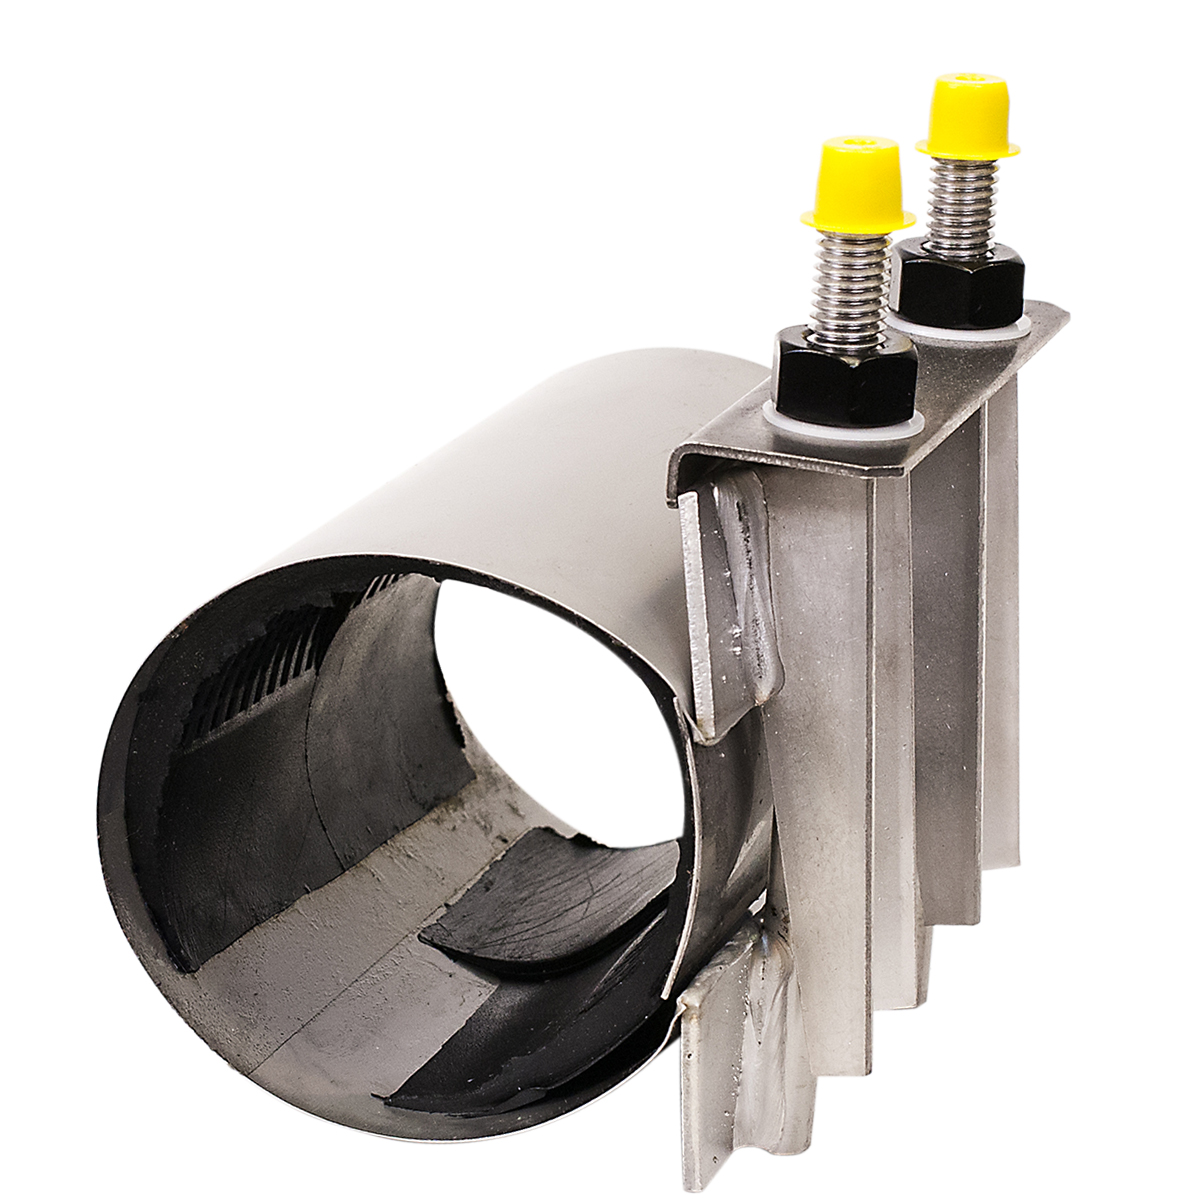 CLC - Stainless steel collar leak clamp. Used to repair leaking solvent welds.Nominal Sizes2 - 4 inchesWorking PressureUp to 150 psiPipe CompatibilityPlastic pipe